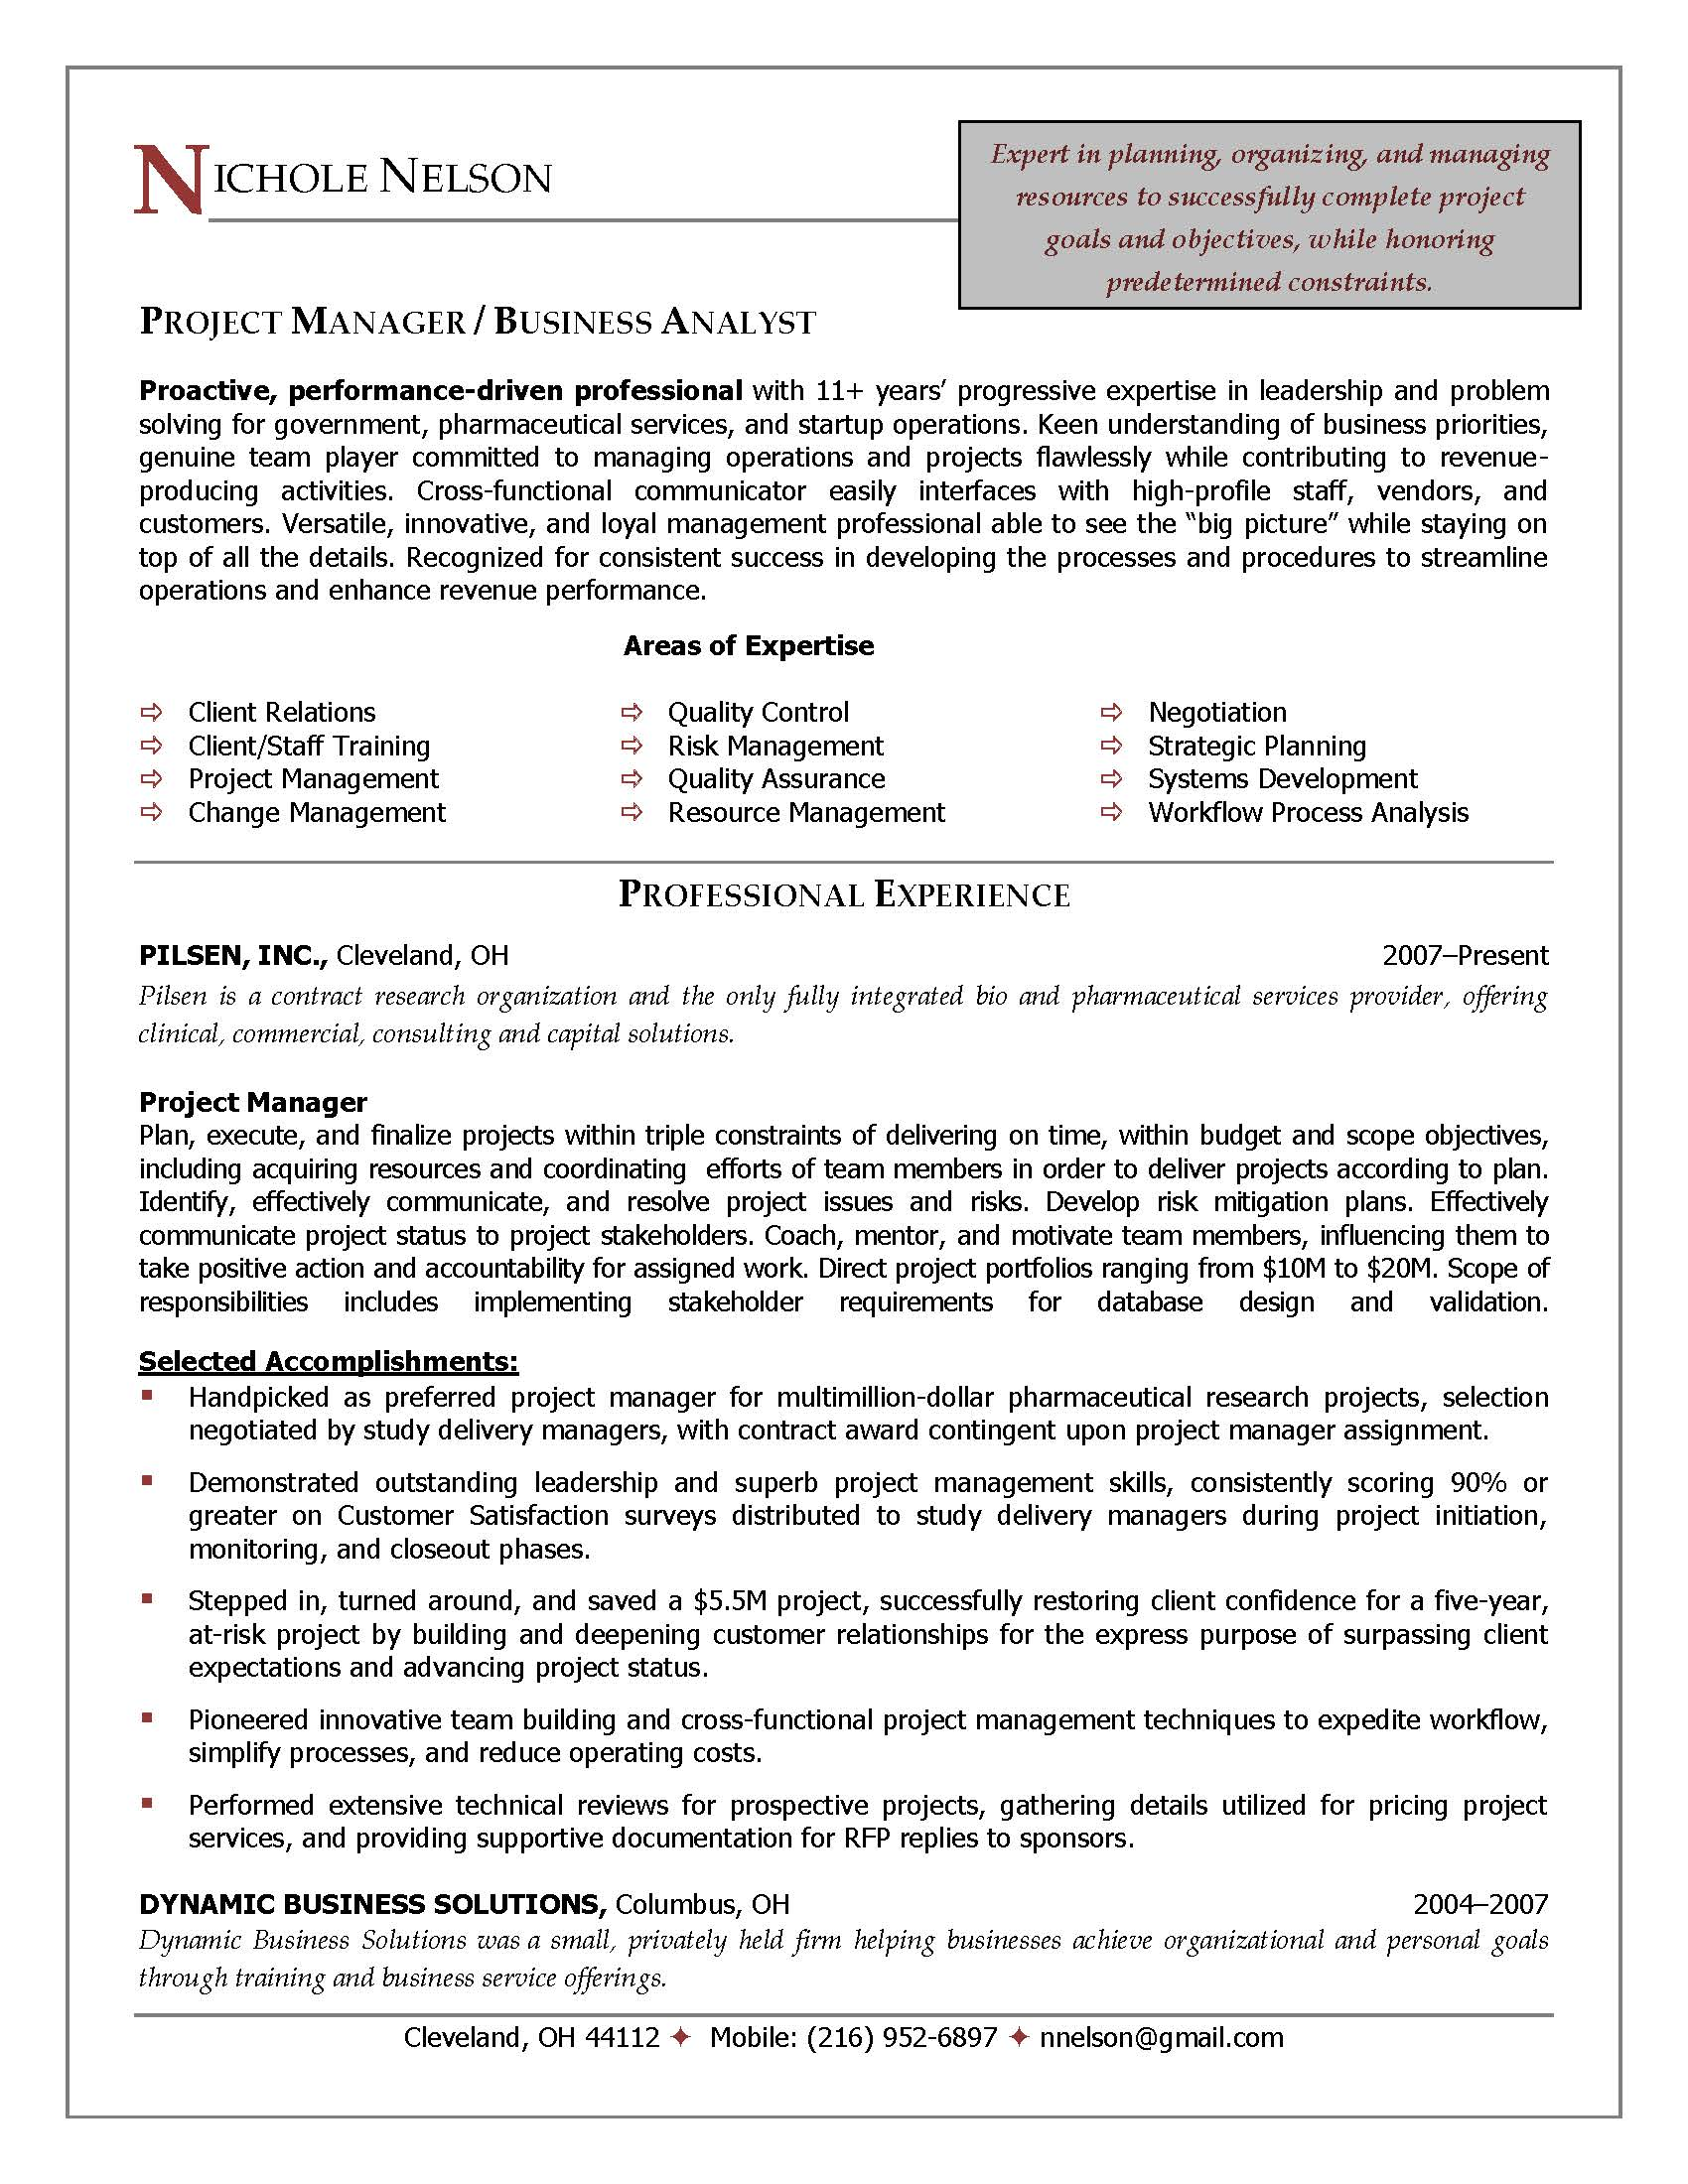 How To Write Resume For Internship With No Experience How To Write